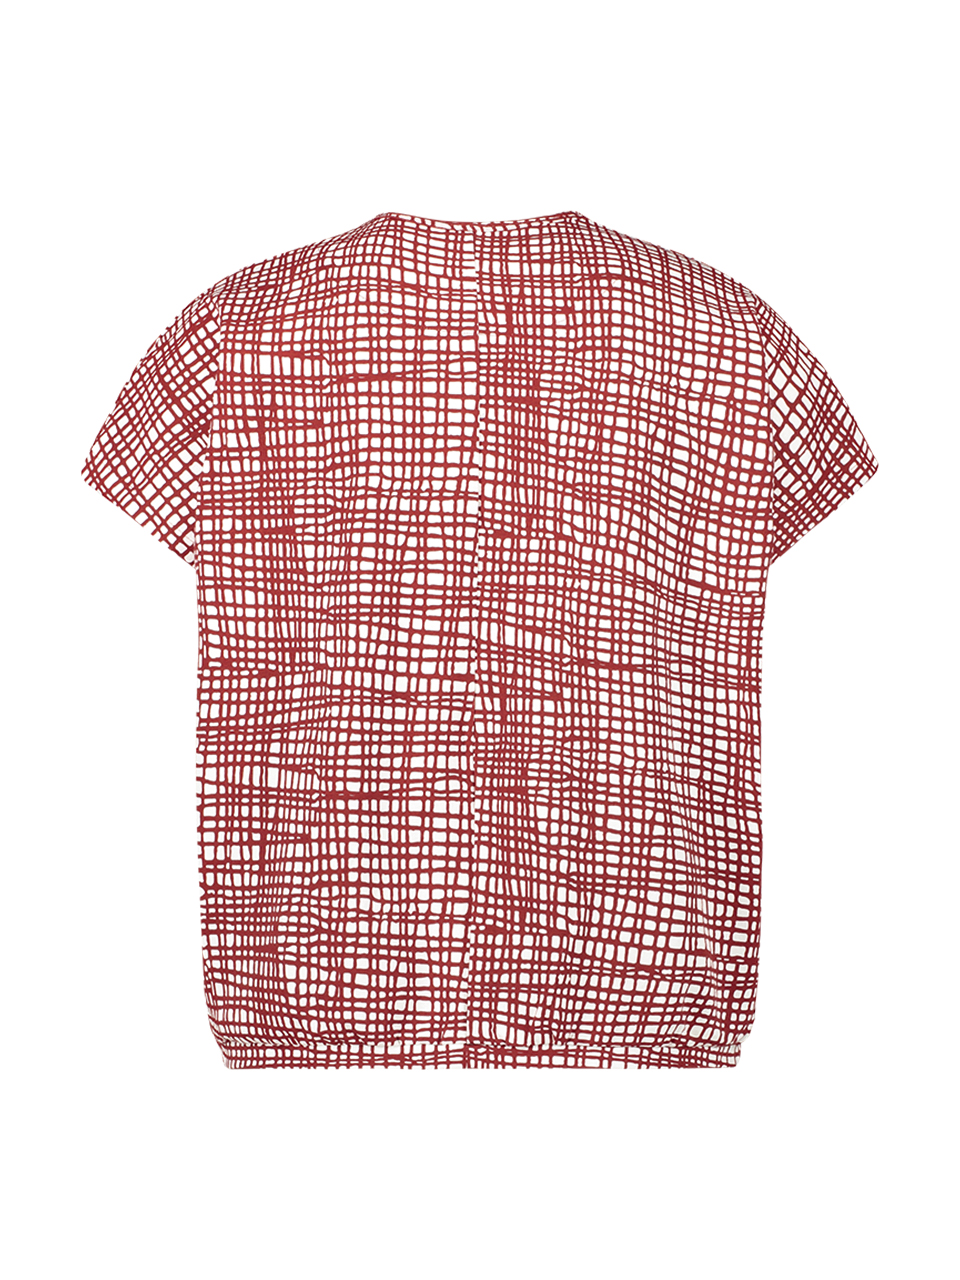 T-shirt jersey print- white/red